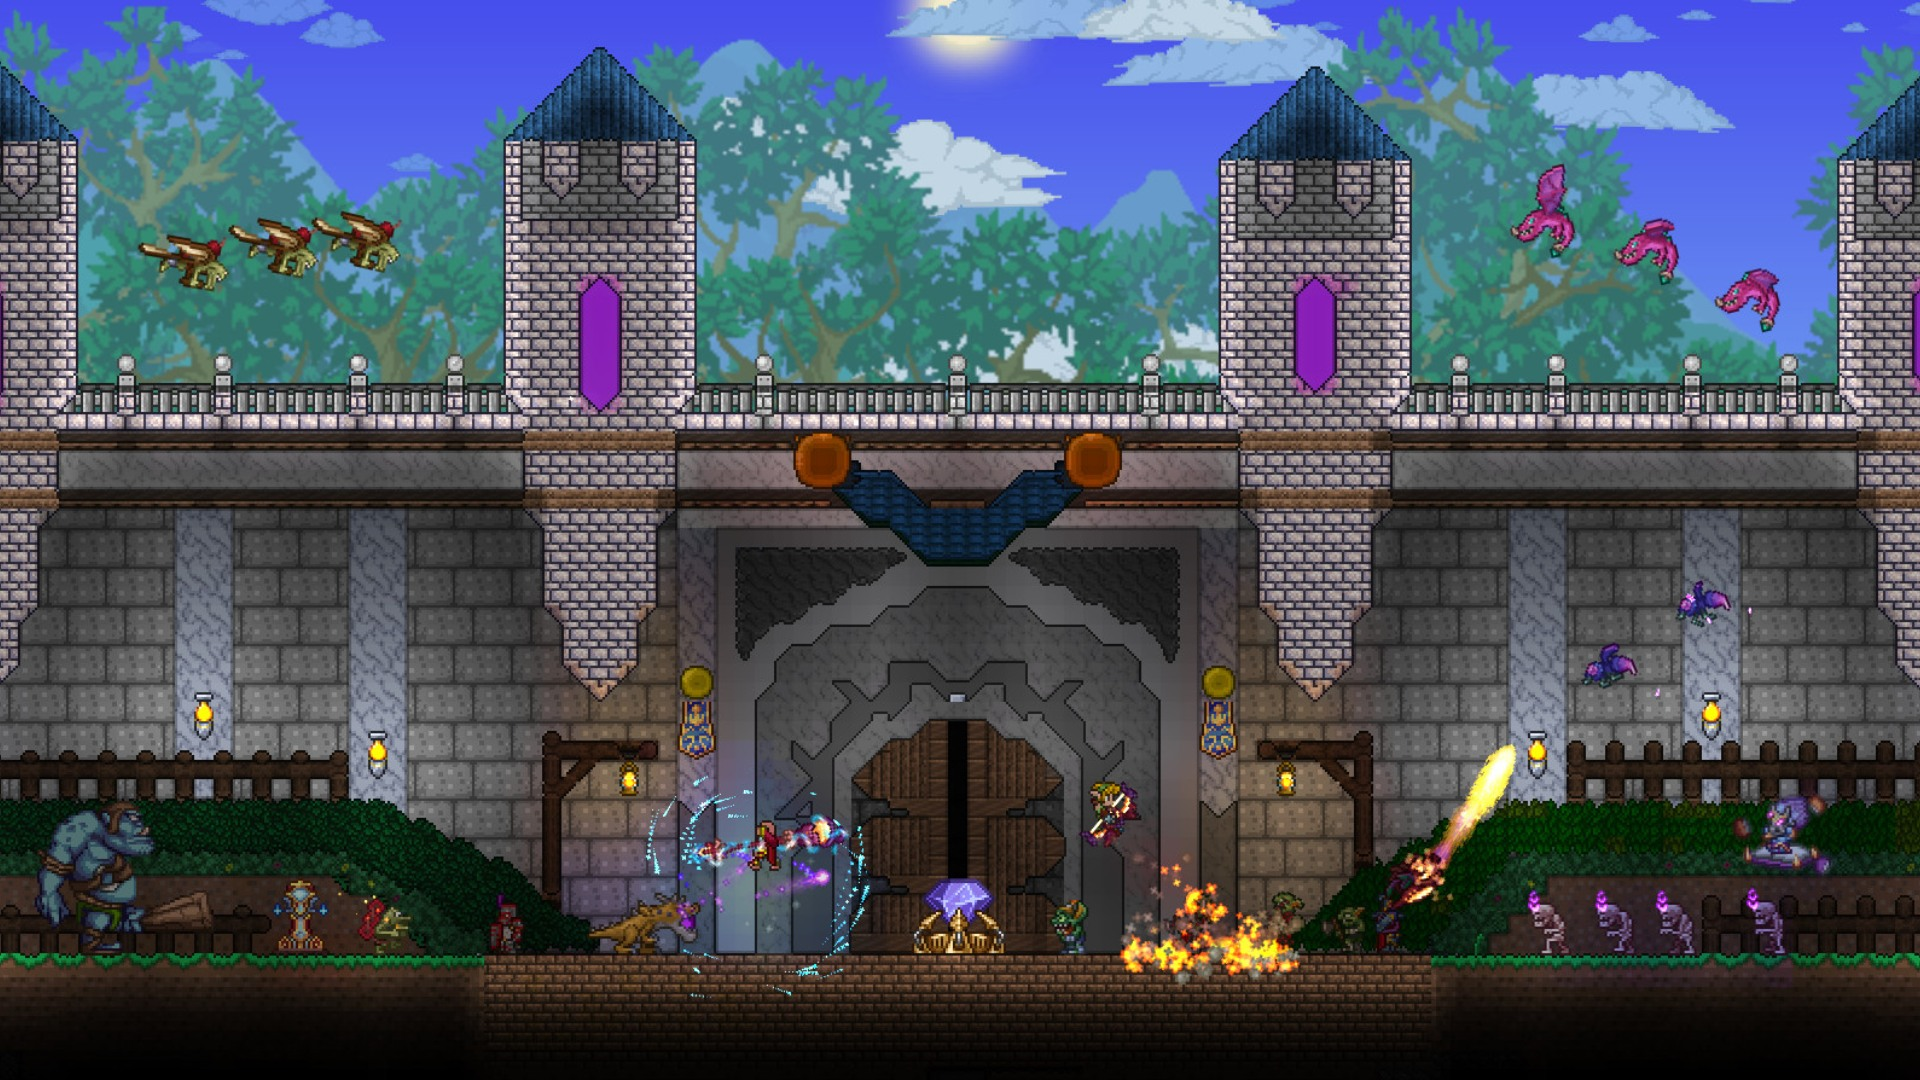 Terraria house – designs and requirements